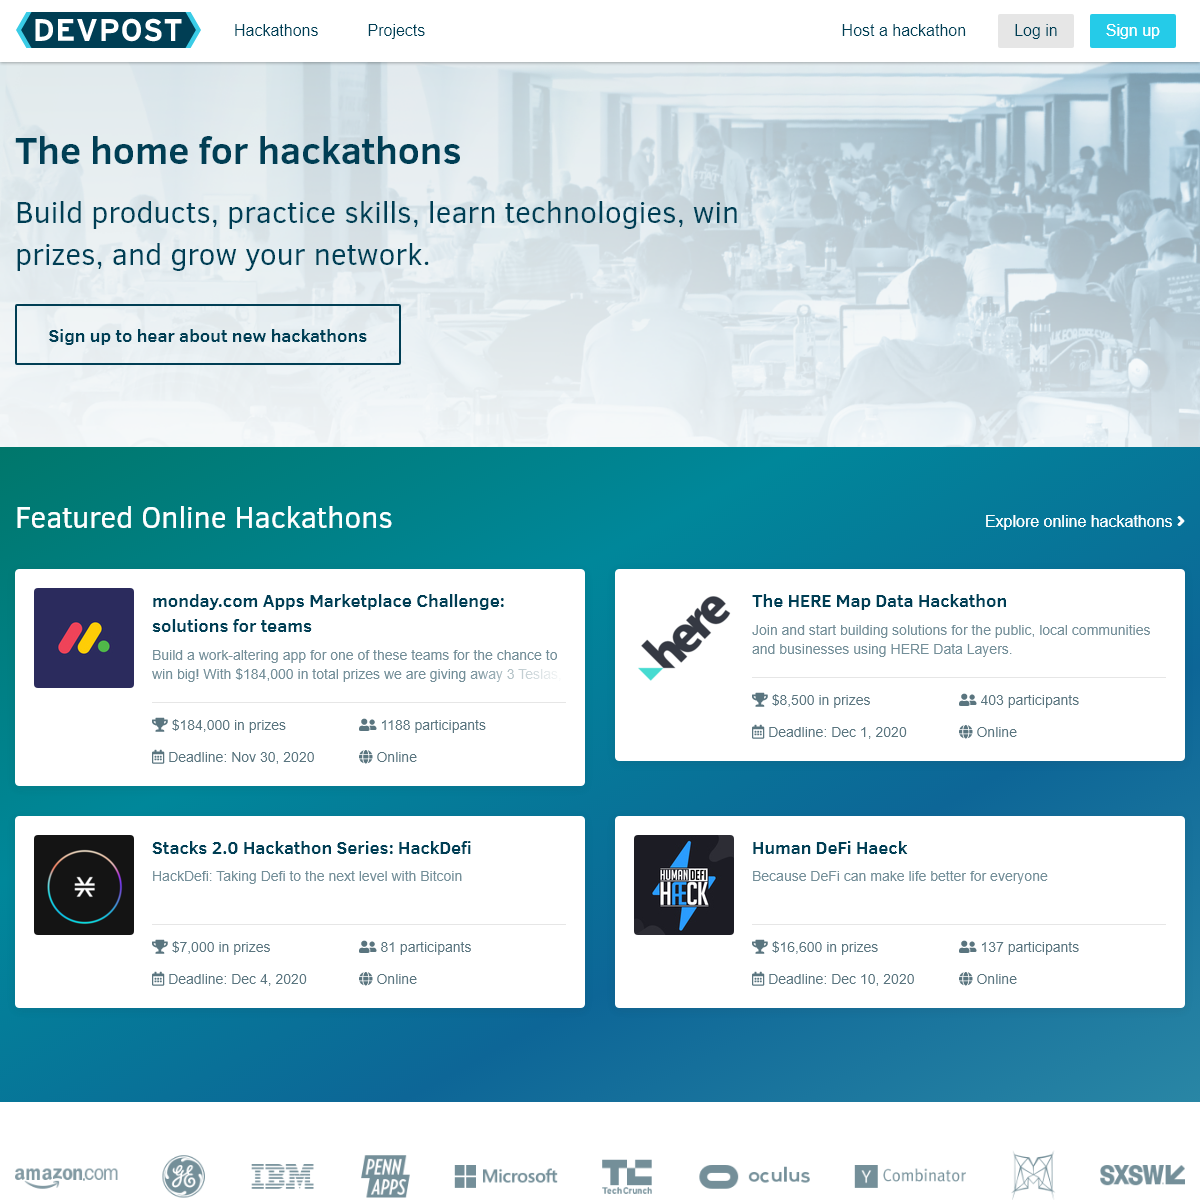 Devpost - The home for hackathons